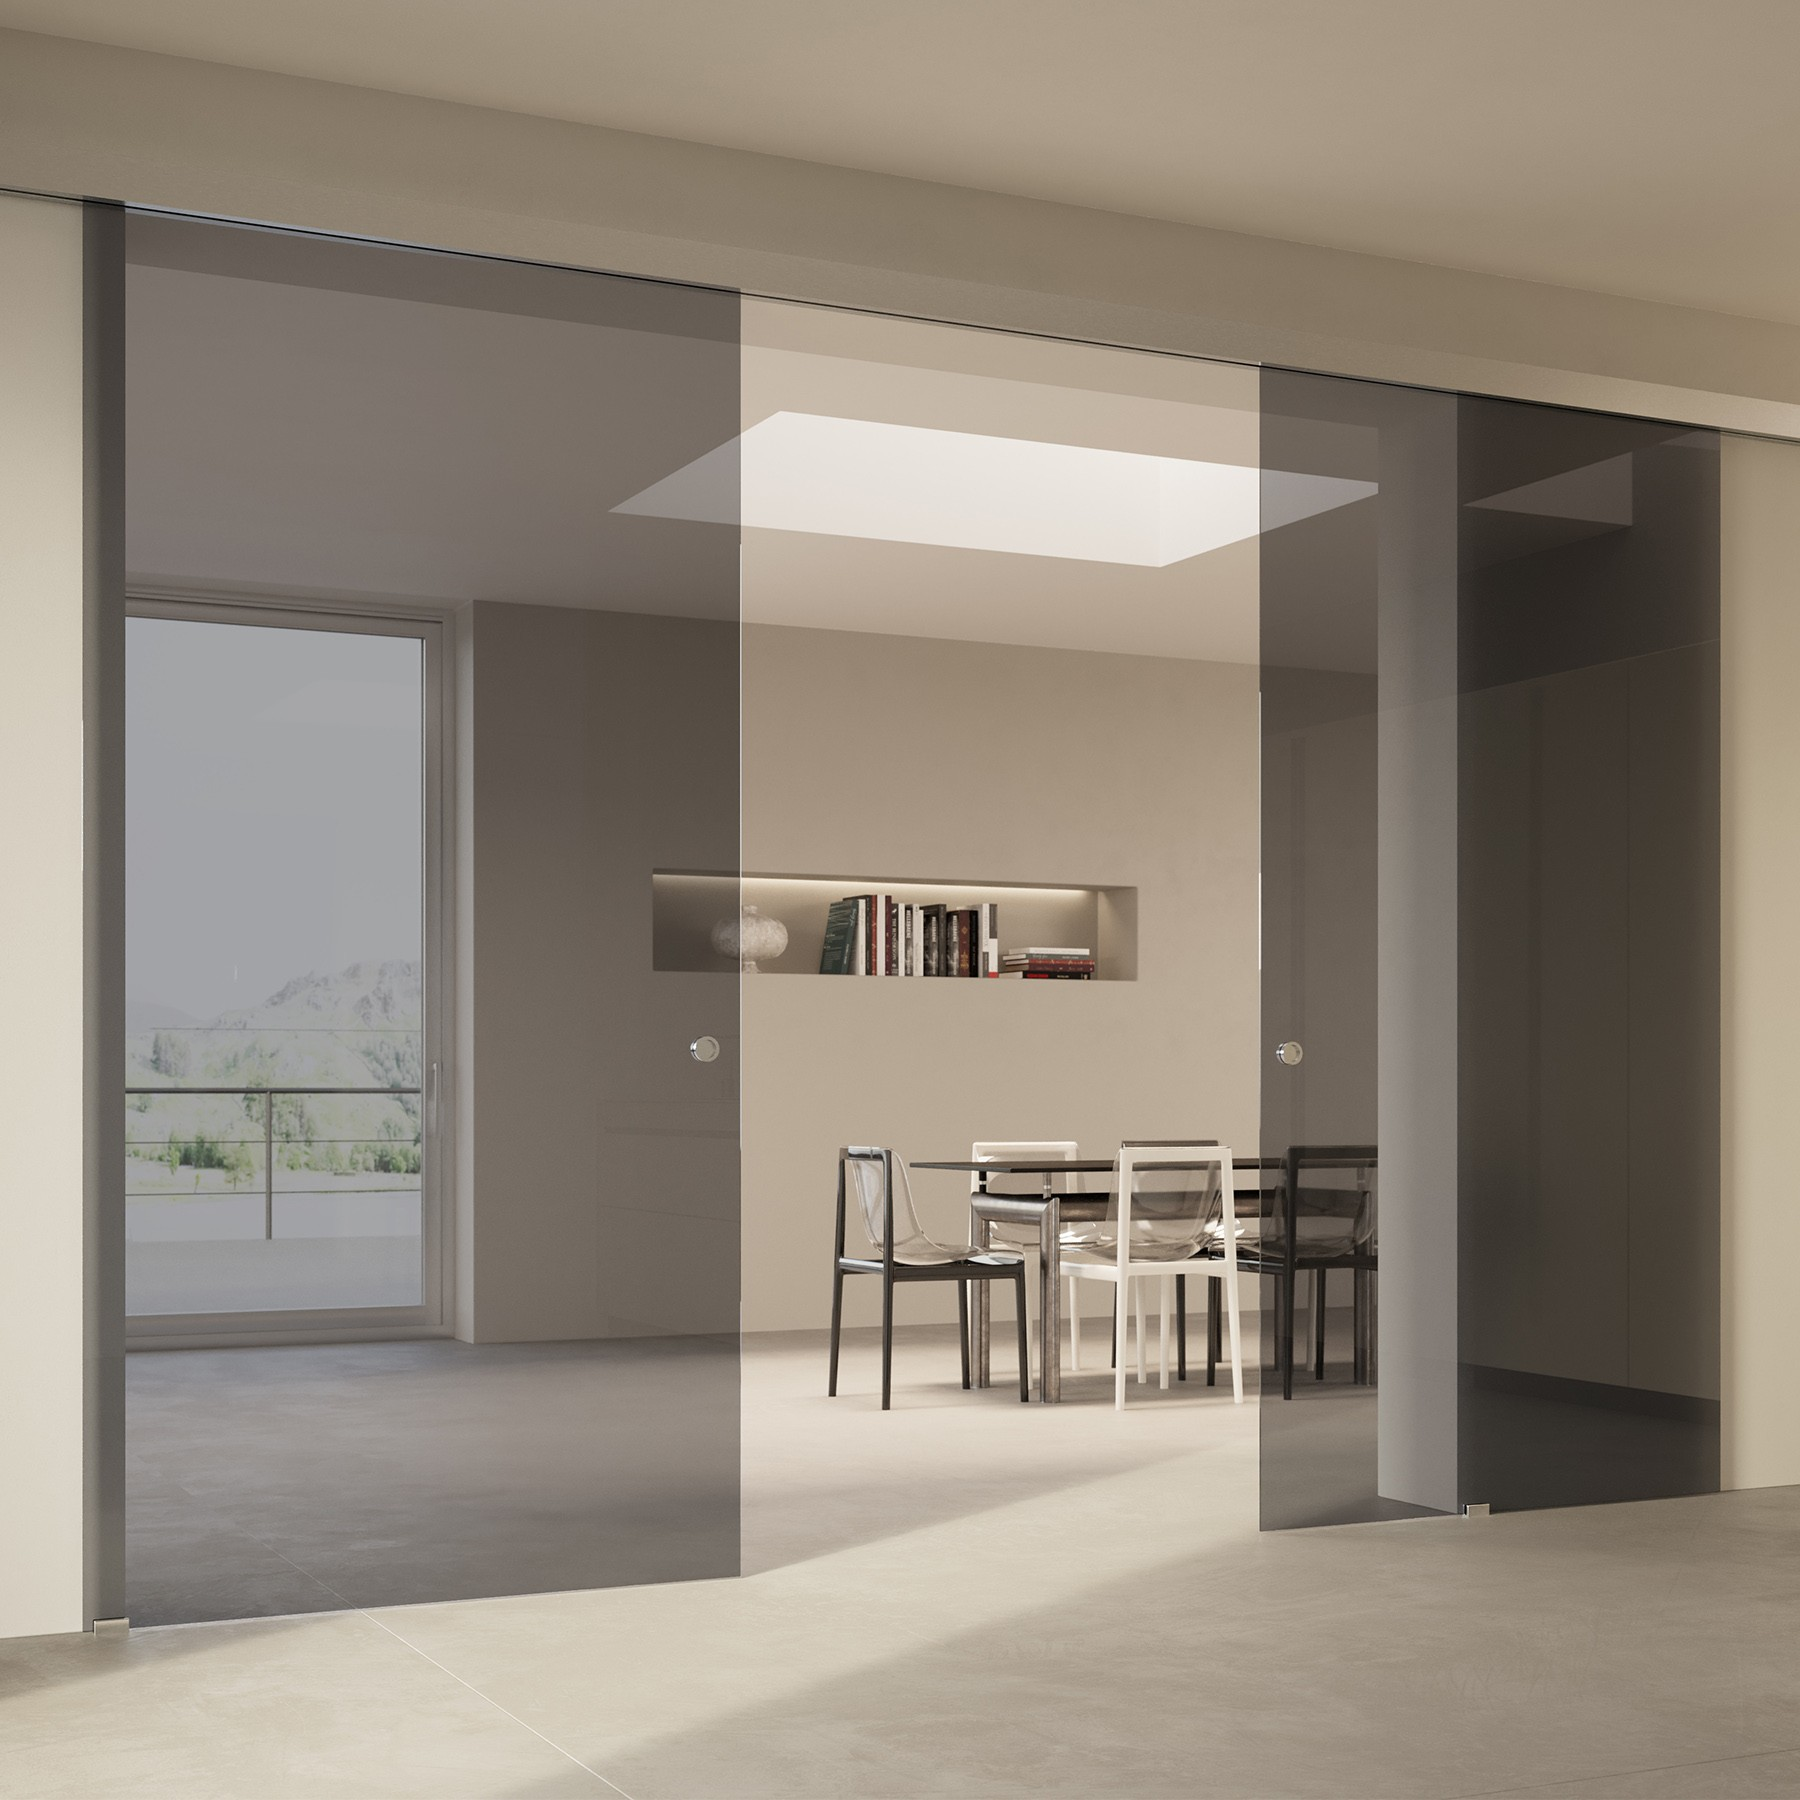 Scenario Visio with Transparent grigio glass